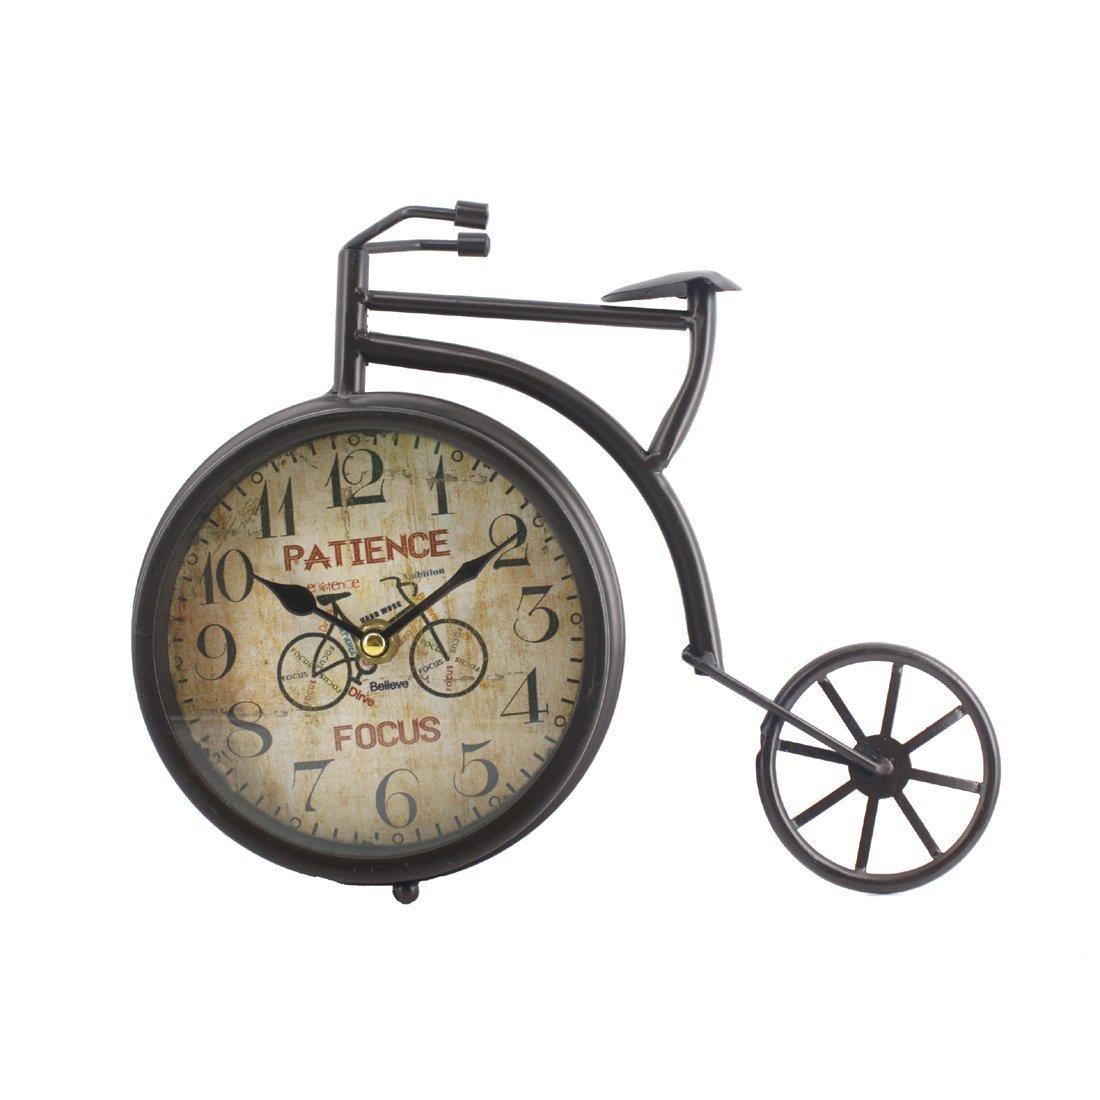 Handcrafted Bike/Bicycle Analog Desk Clock,11